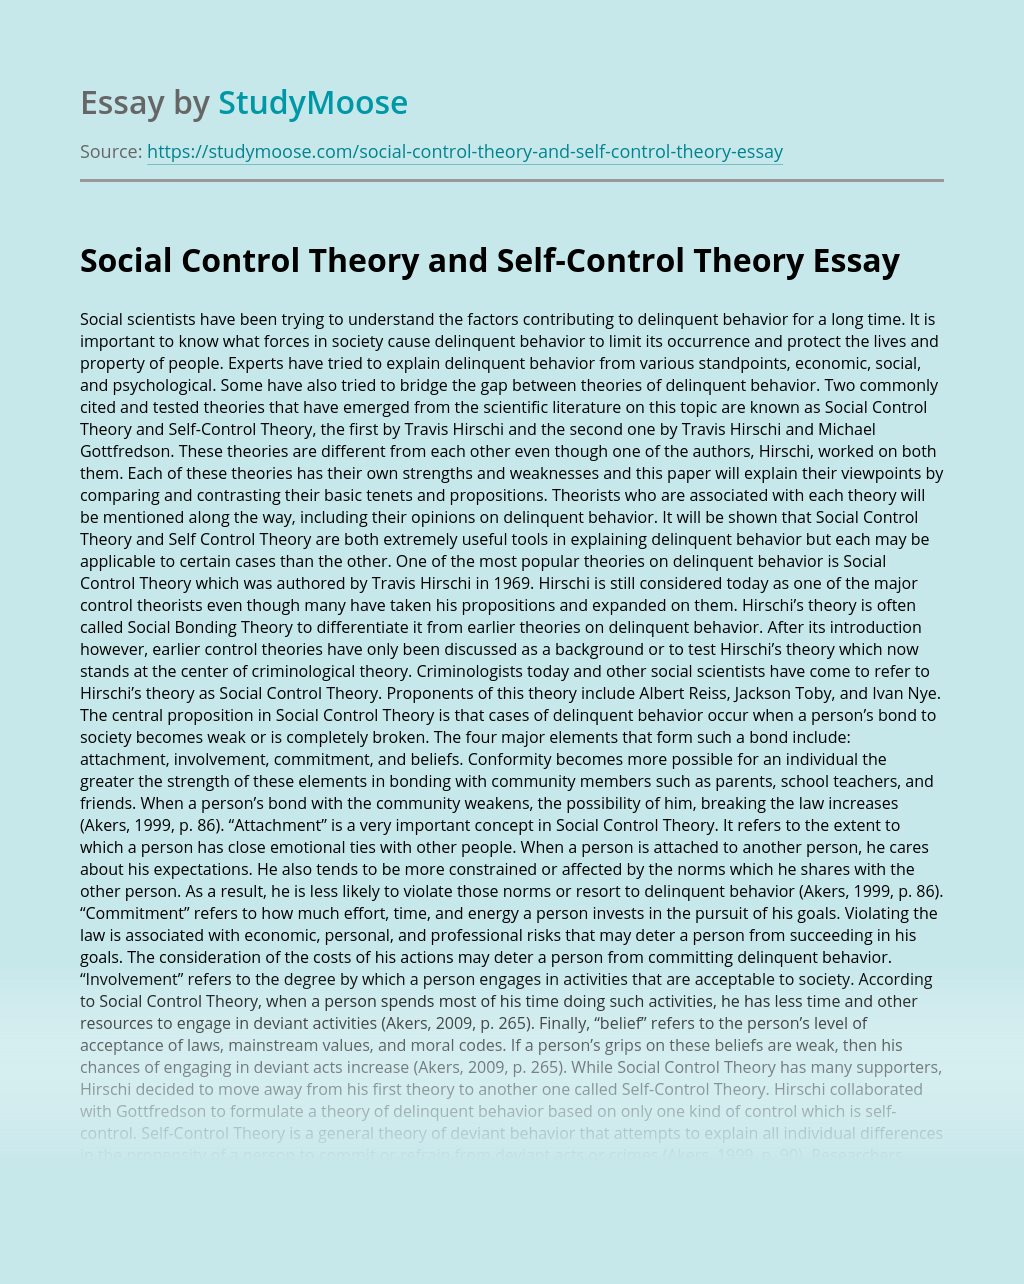 Social Control Theory and Self-Control Theory